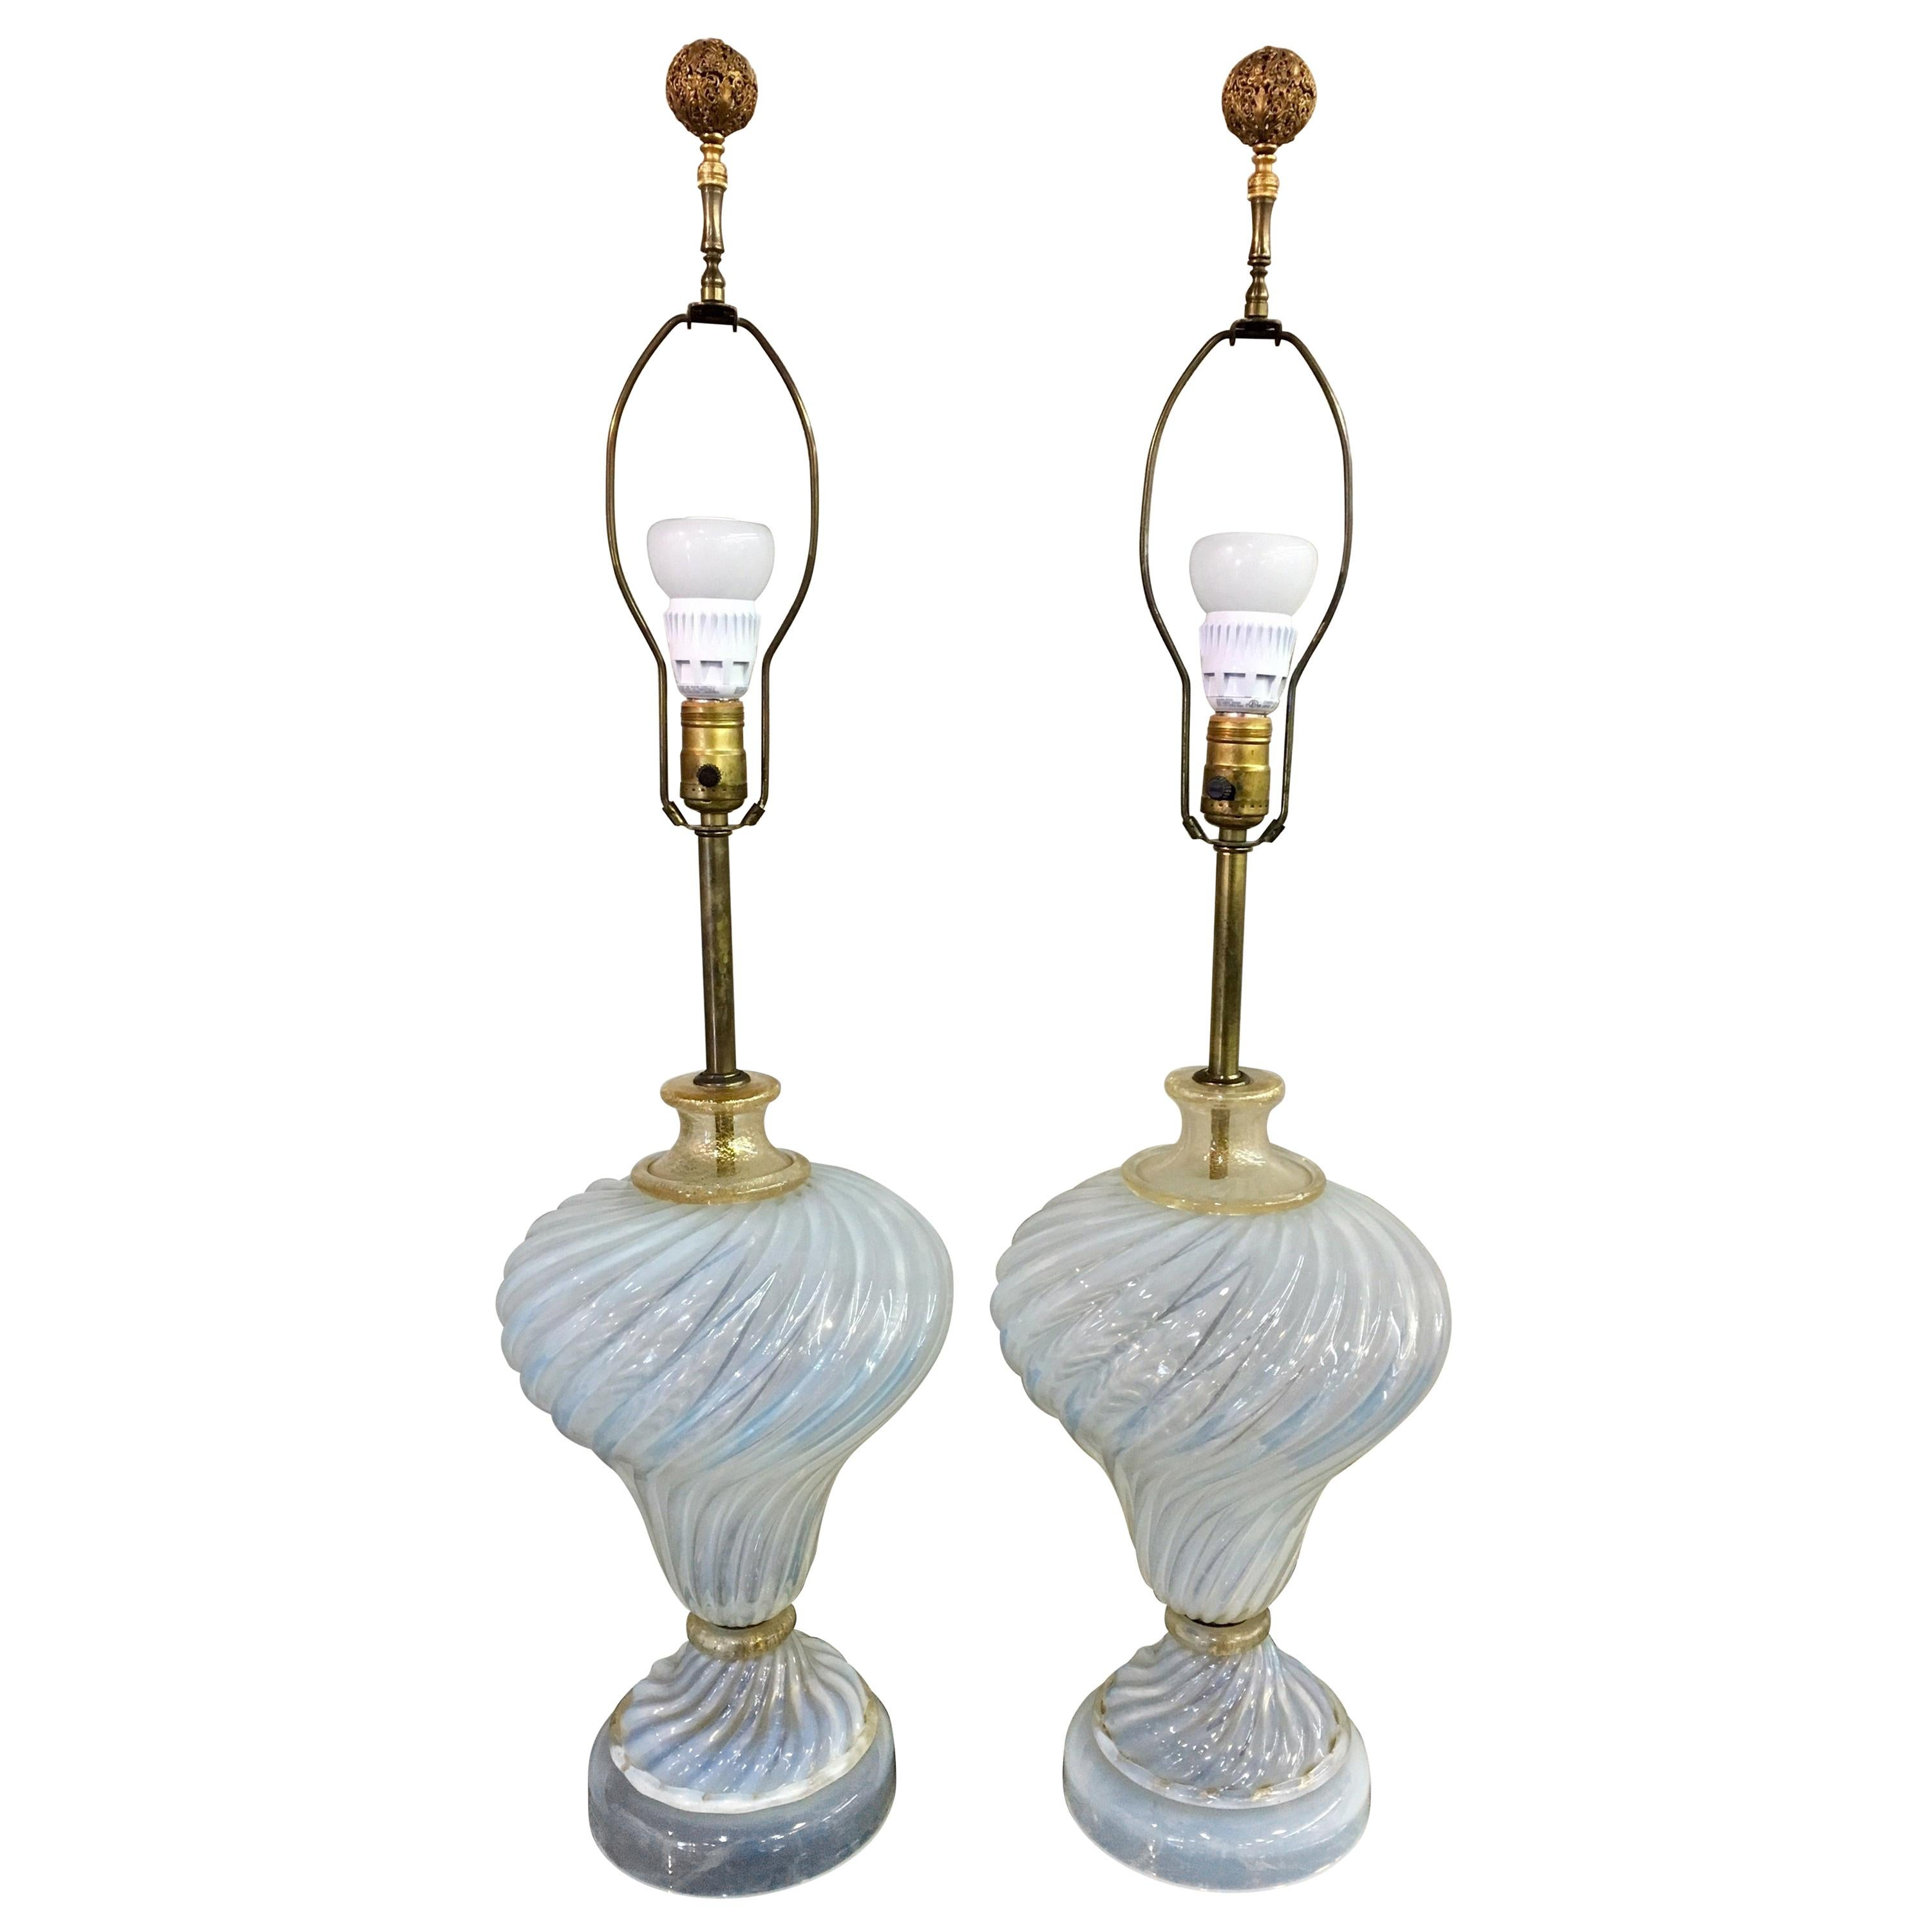 Murano Glass Italy Pair of Table Lamps